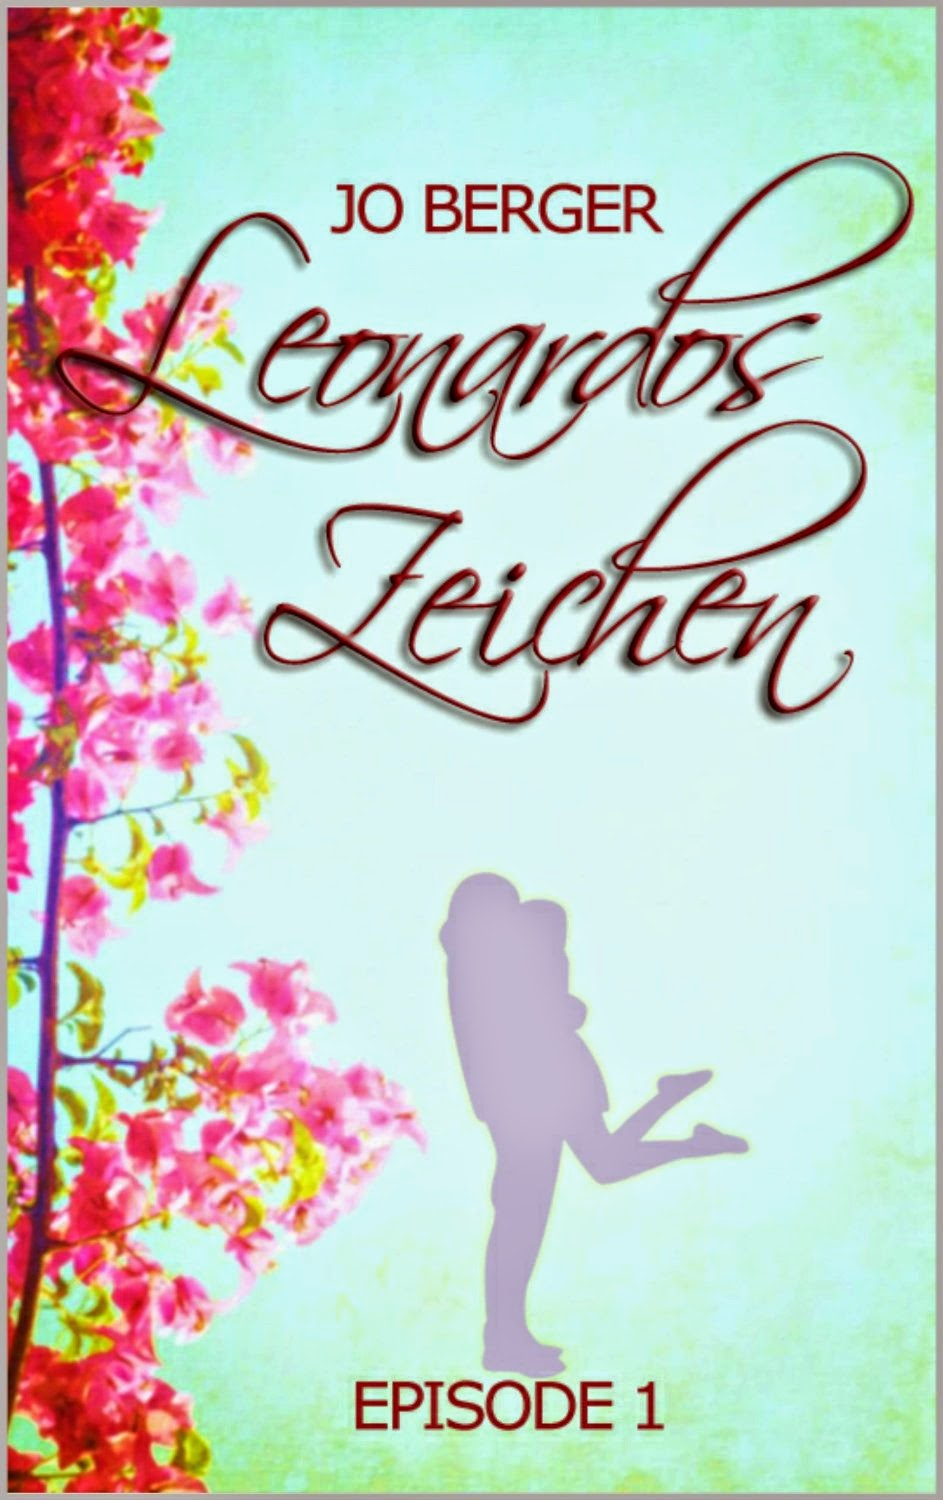 http://www.amazon.de/Leonardos-Zeichen-Episode-Jo-Berger-ebook/dp/B00O4BFD12/ref=sr_1_1?ie=UTF8&qid=1414240483&sr=8-1&keywords=leonardos+zeichen